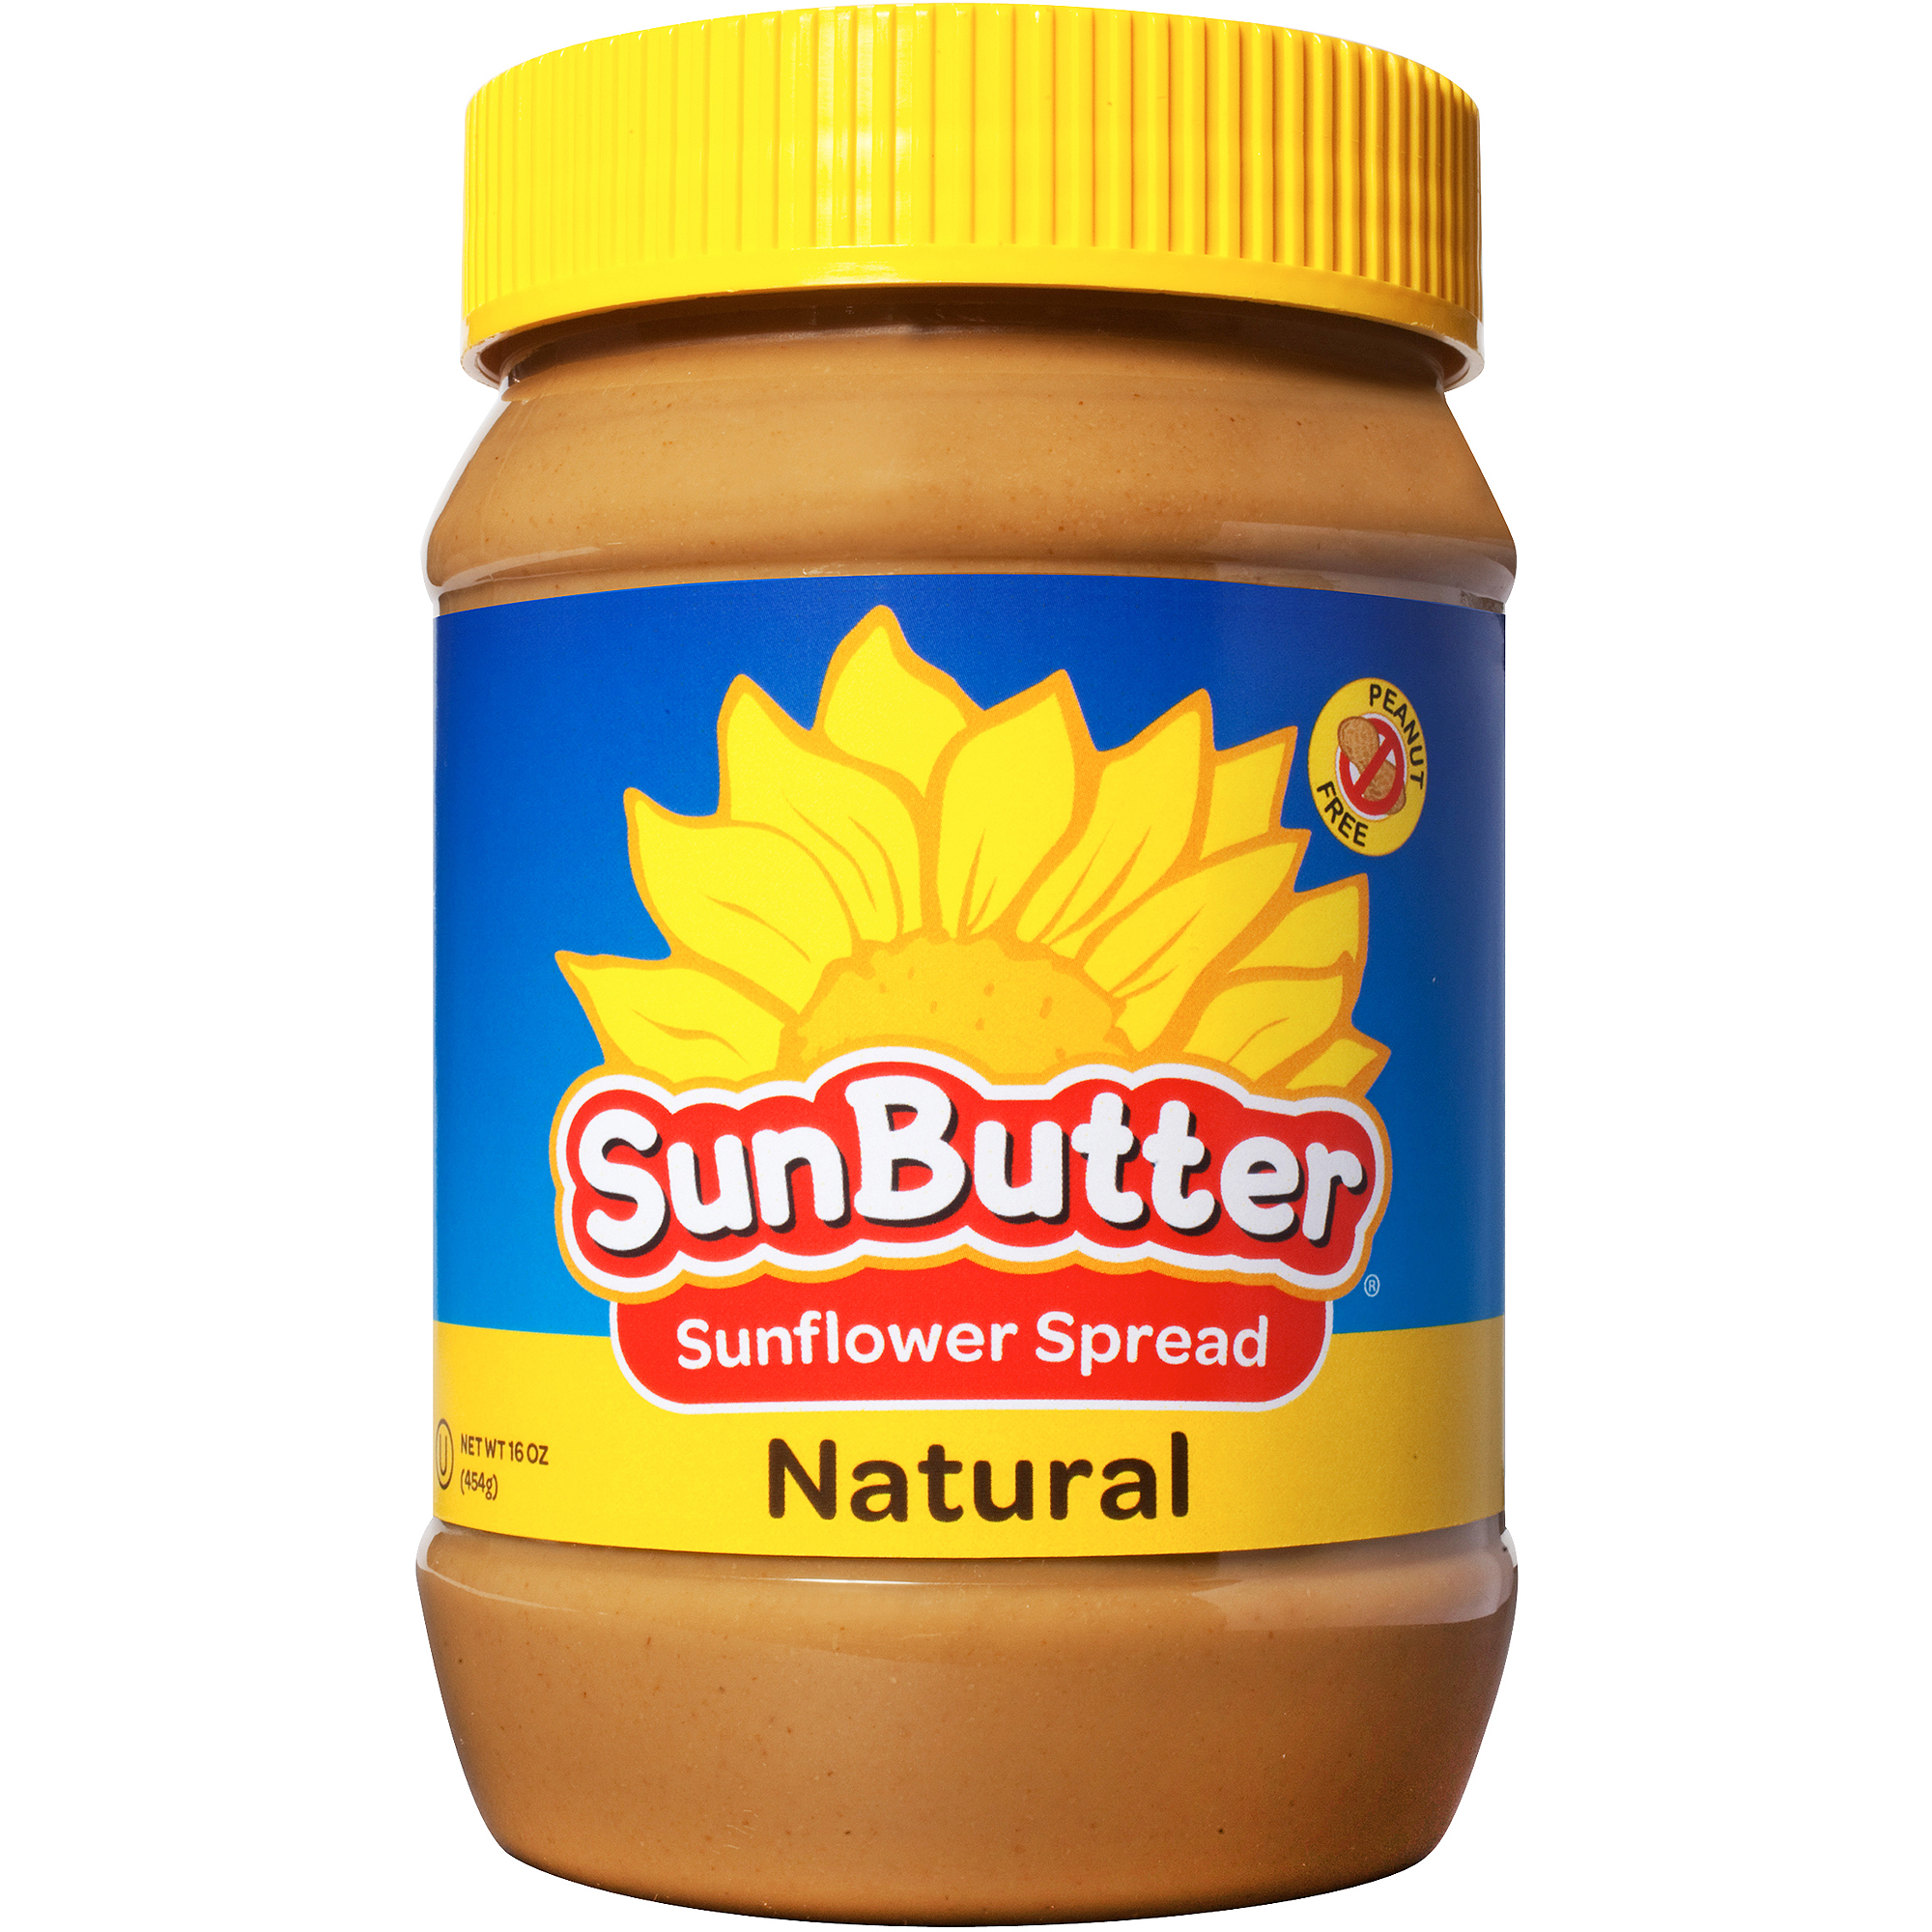 SunButter Natural Sunflower Spread, 16 oz